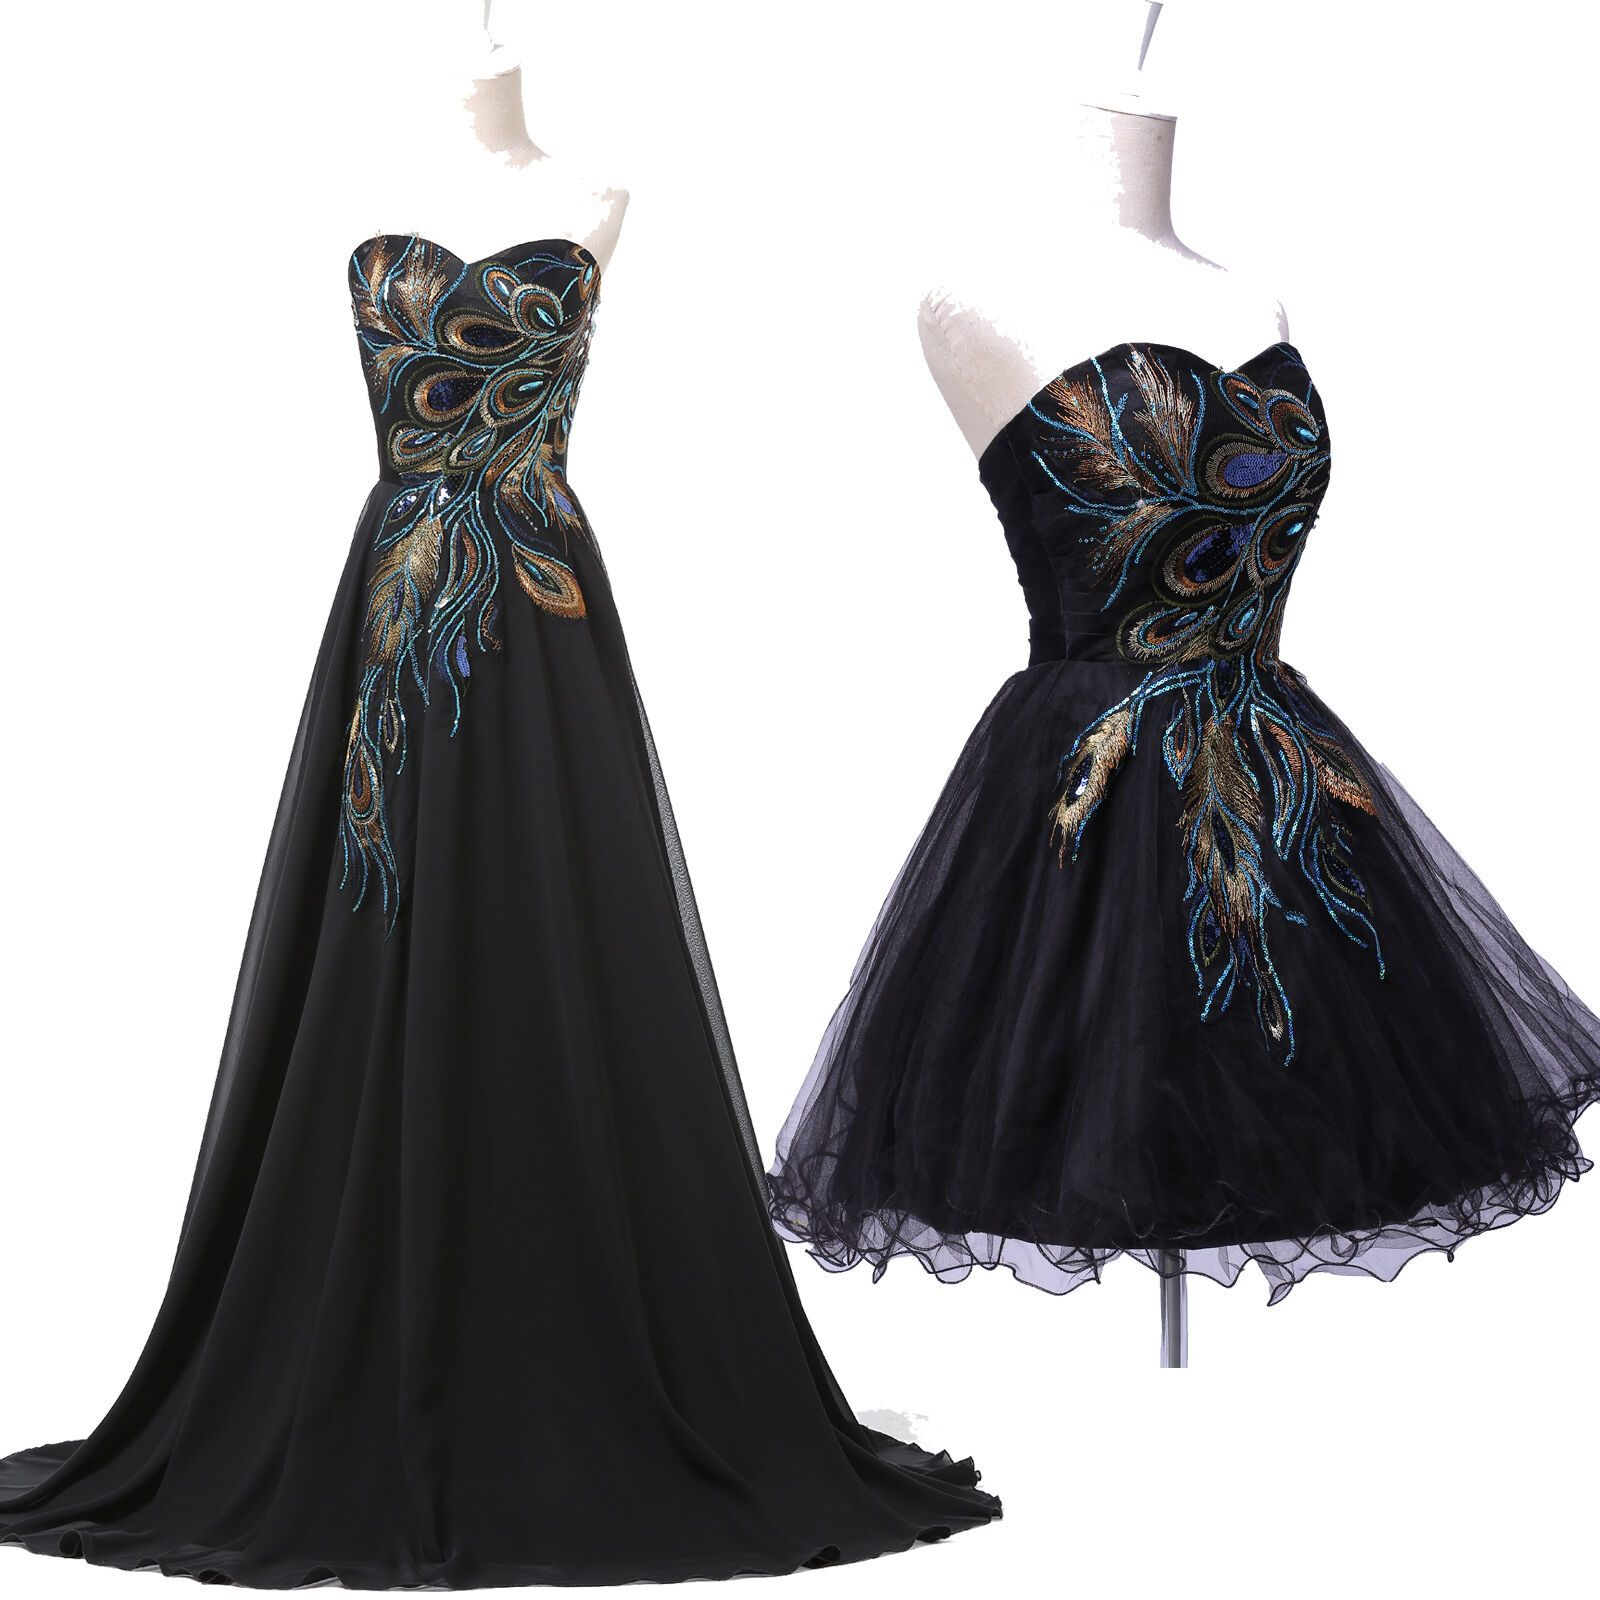 65a0a71338069 Long/Short PEACOCK Masquerade Formal Evening Ball Gown Party Prom Dresses  Black Sc 1 St EBay